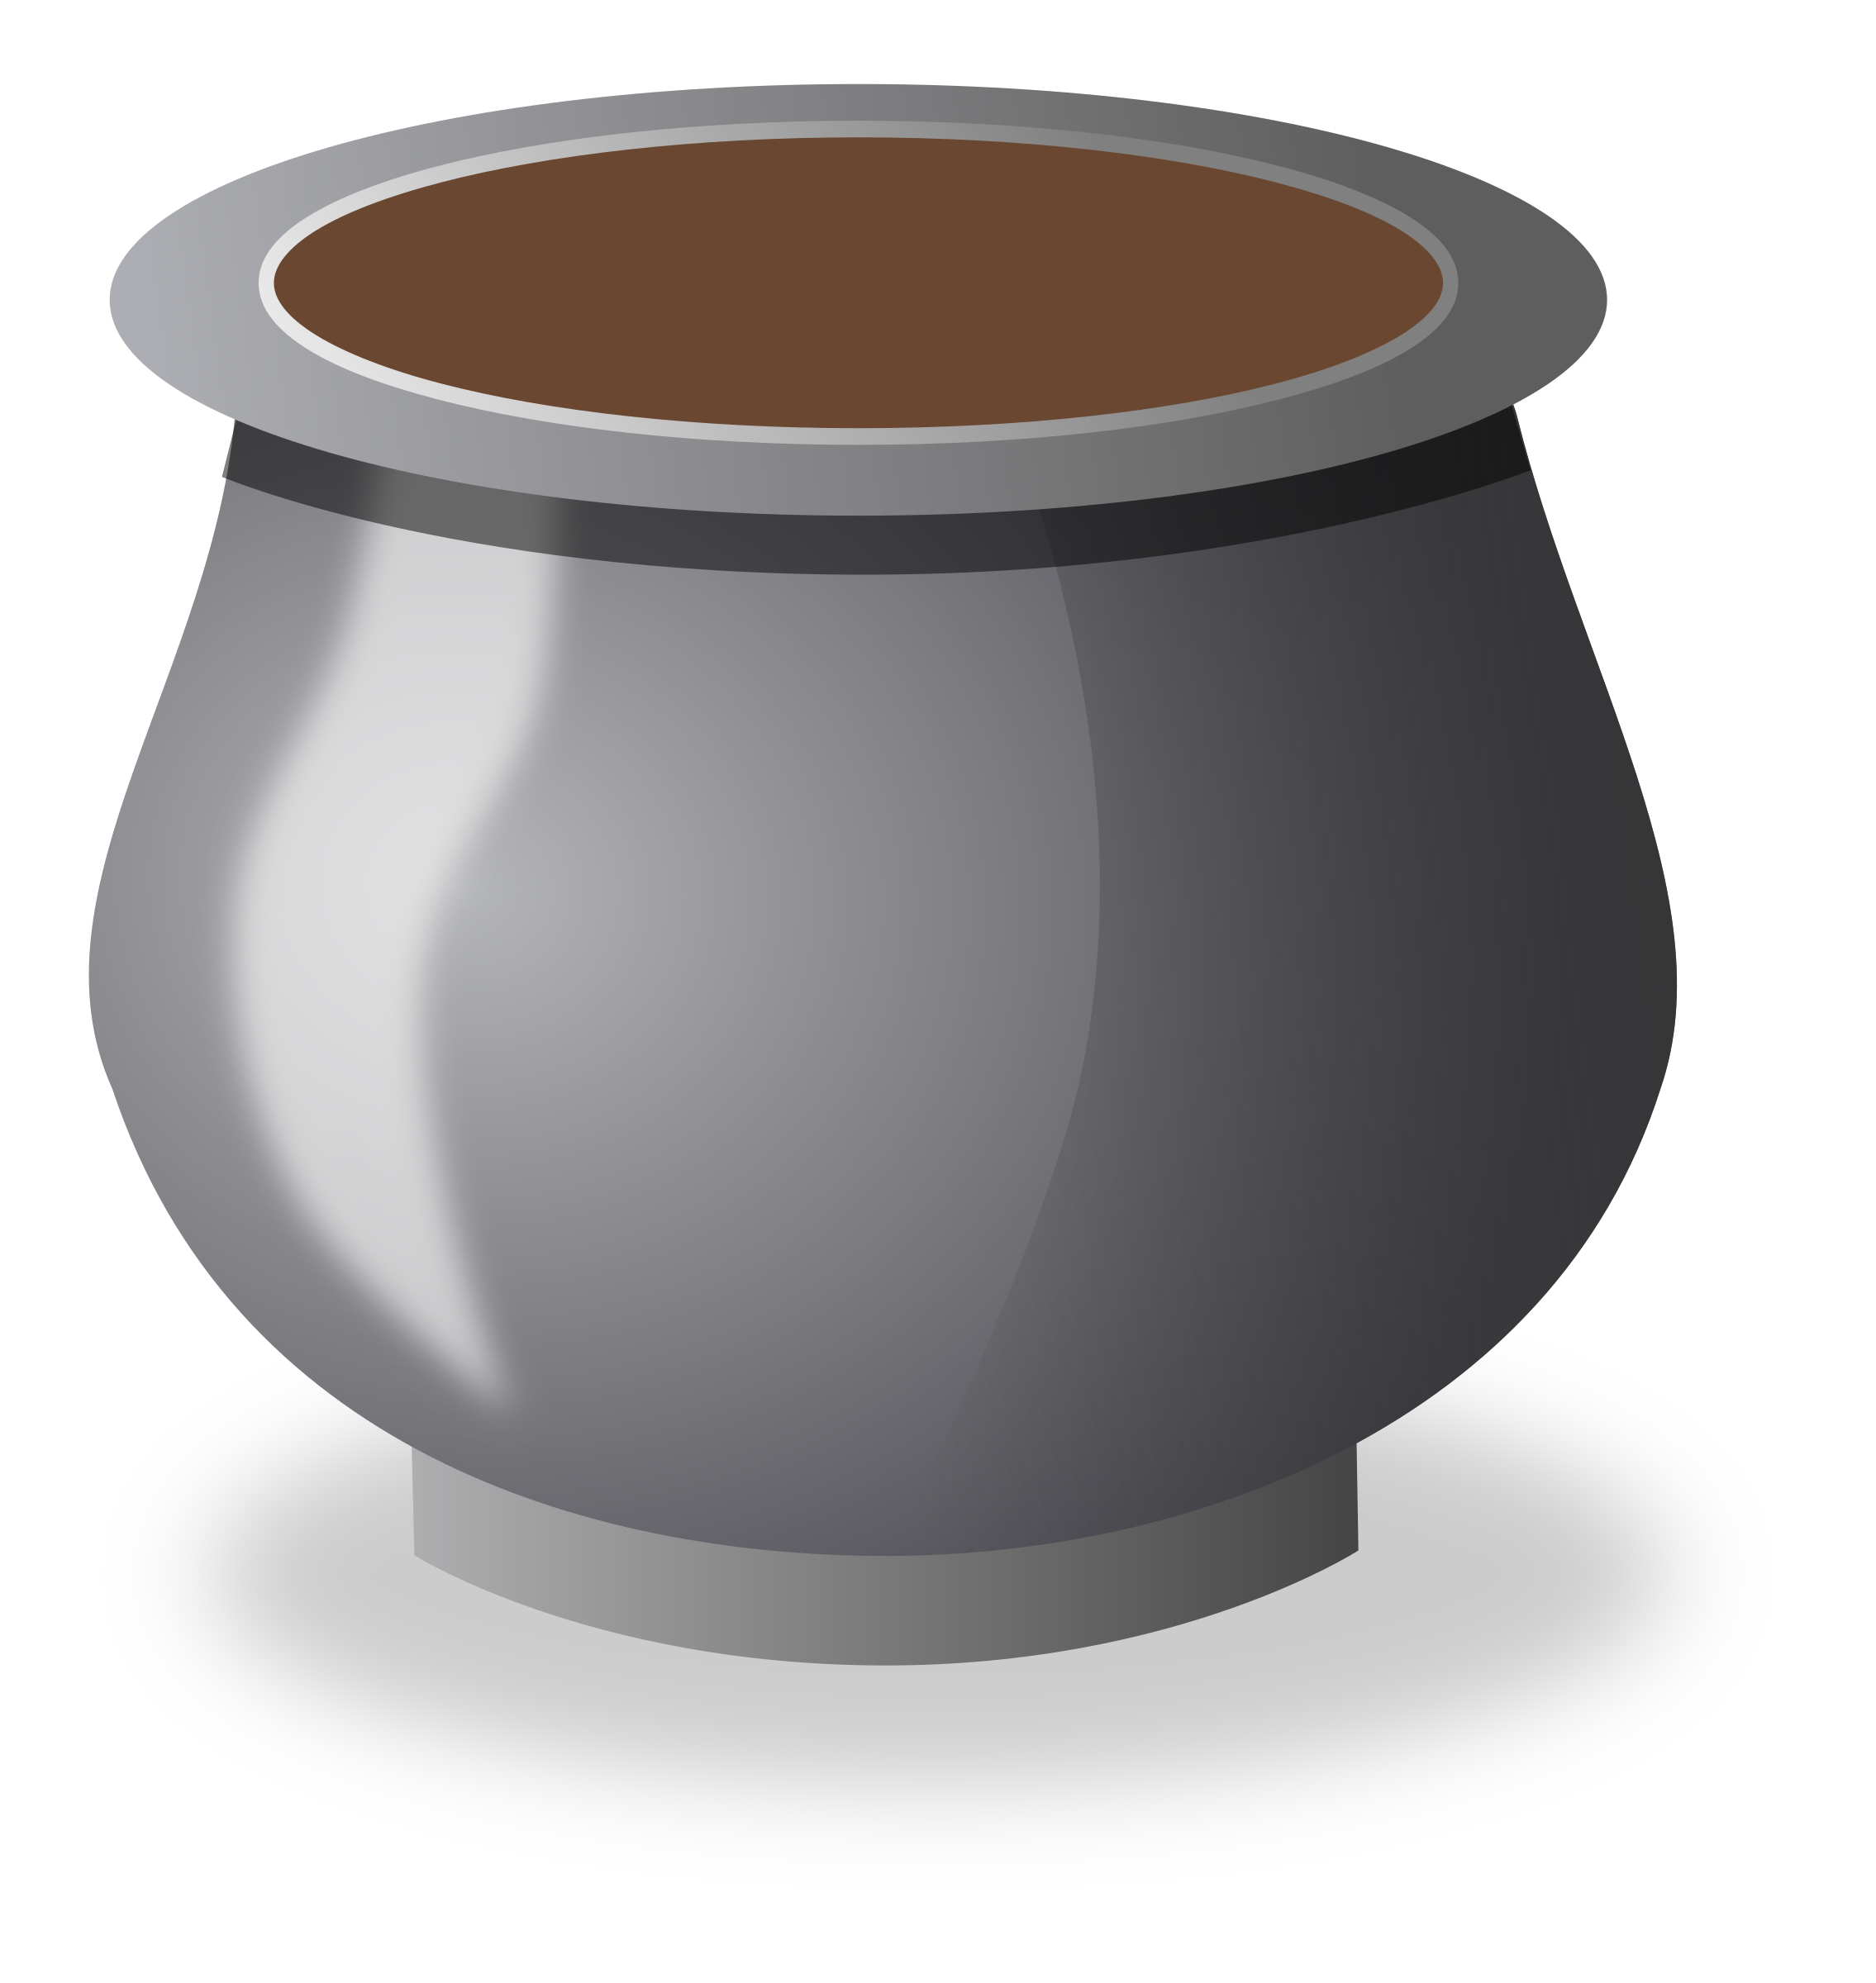 Pot by karthikeyan